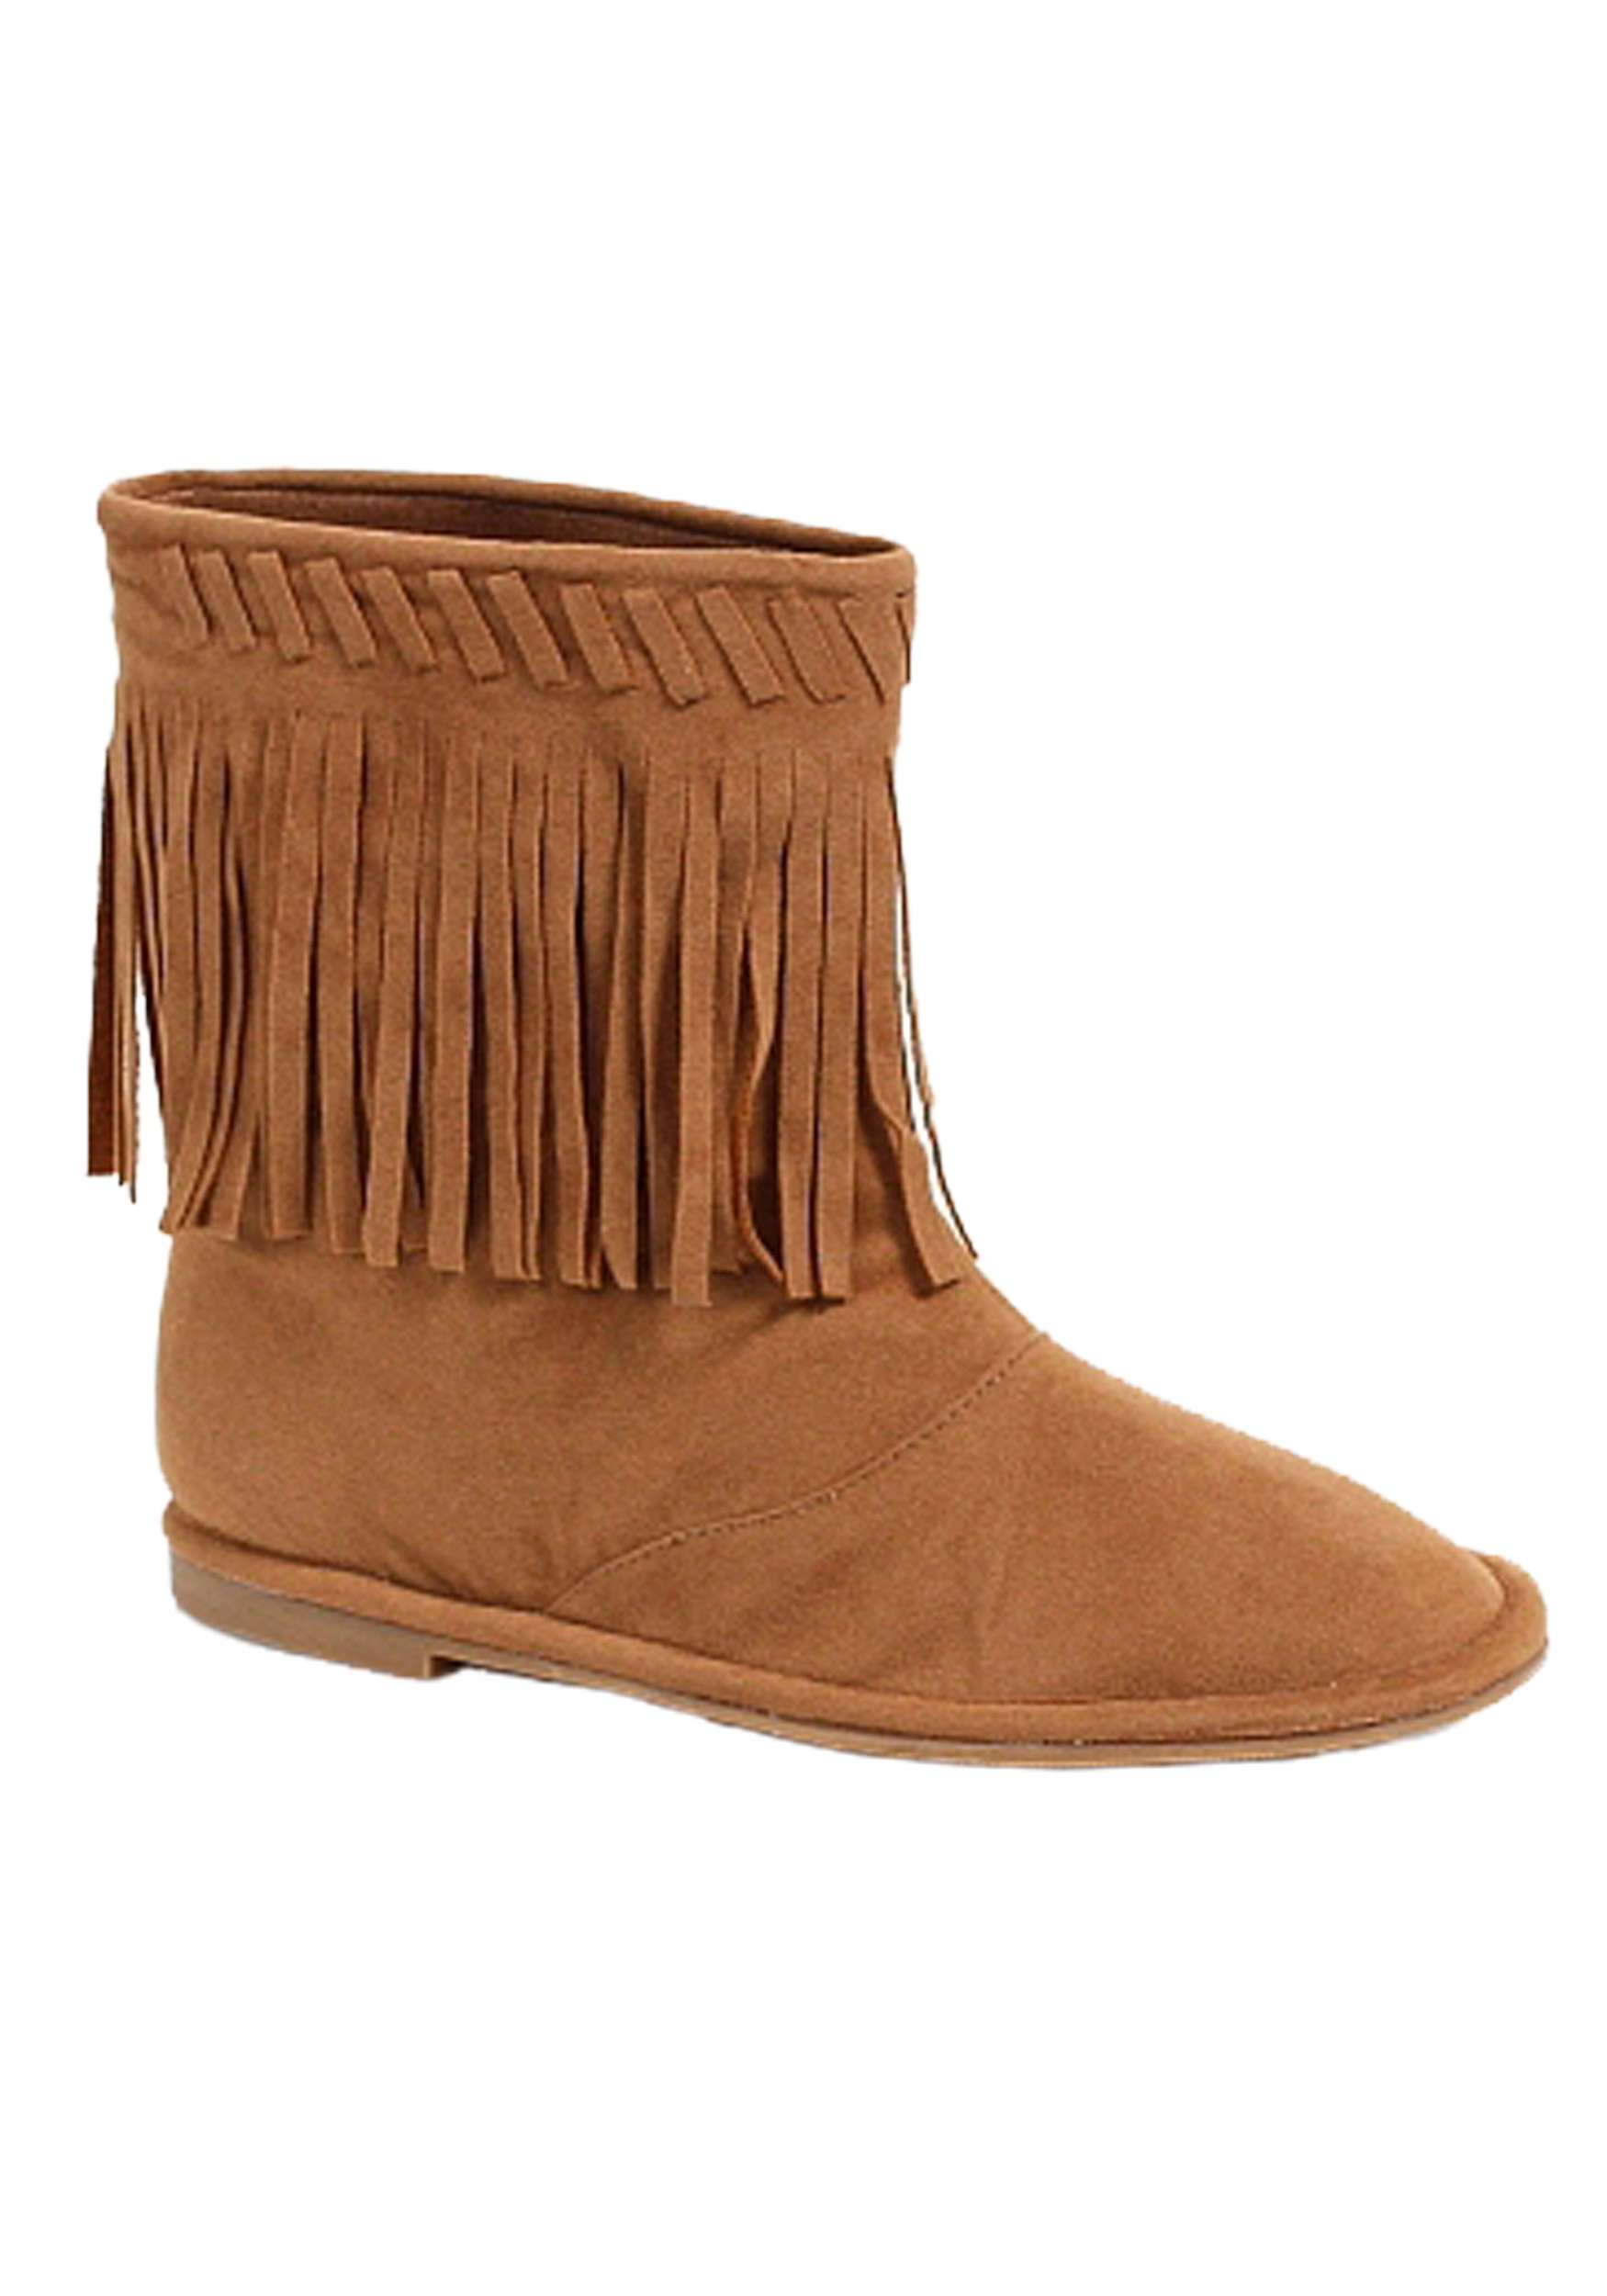 Child Indian Boots